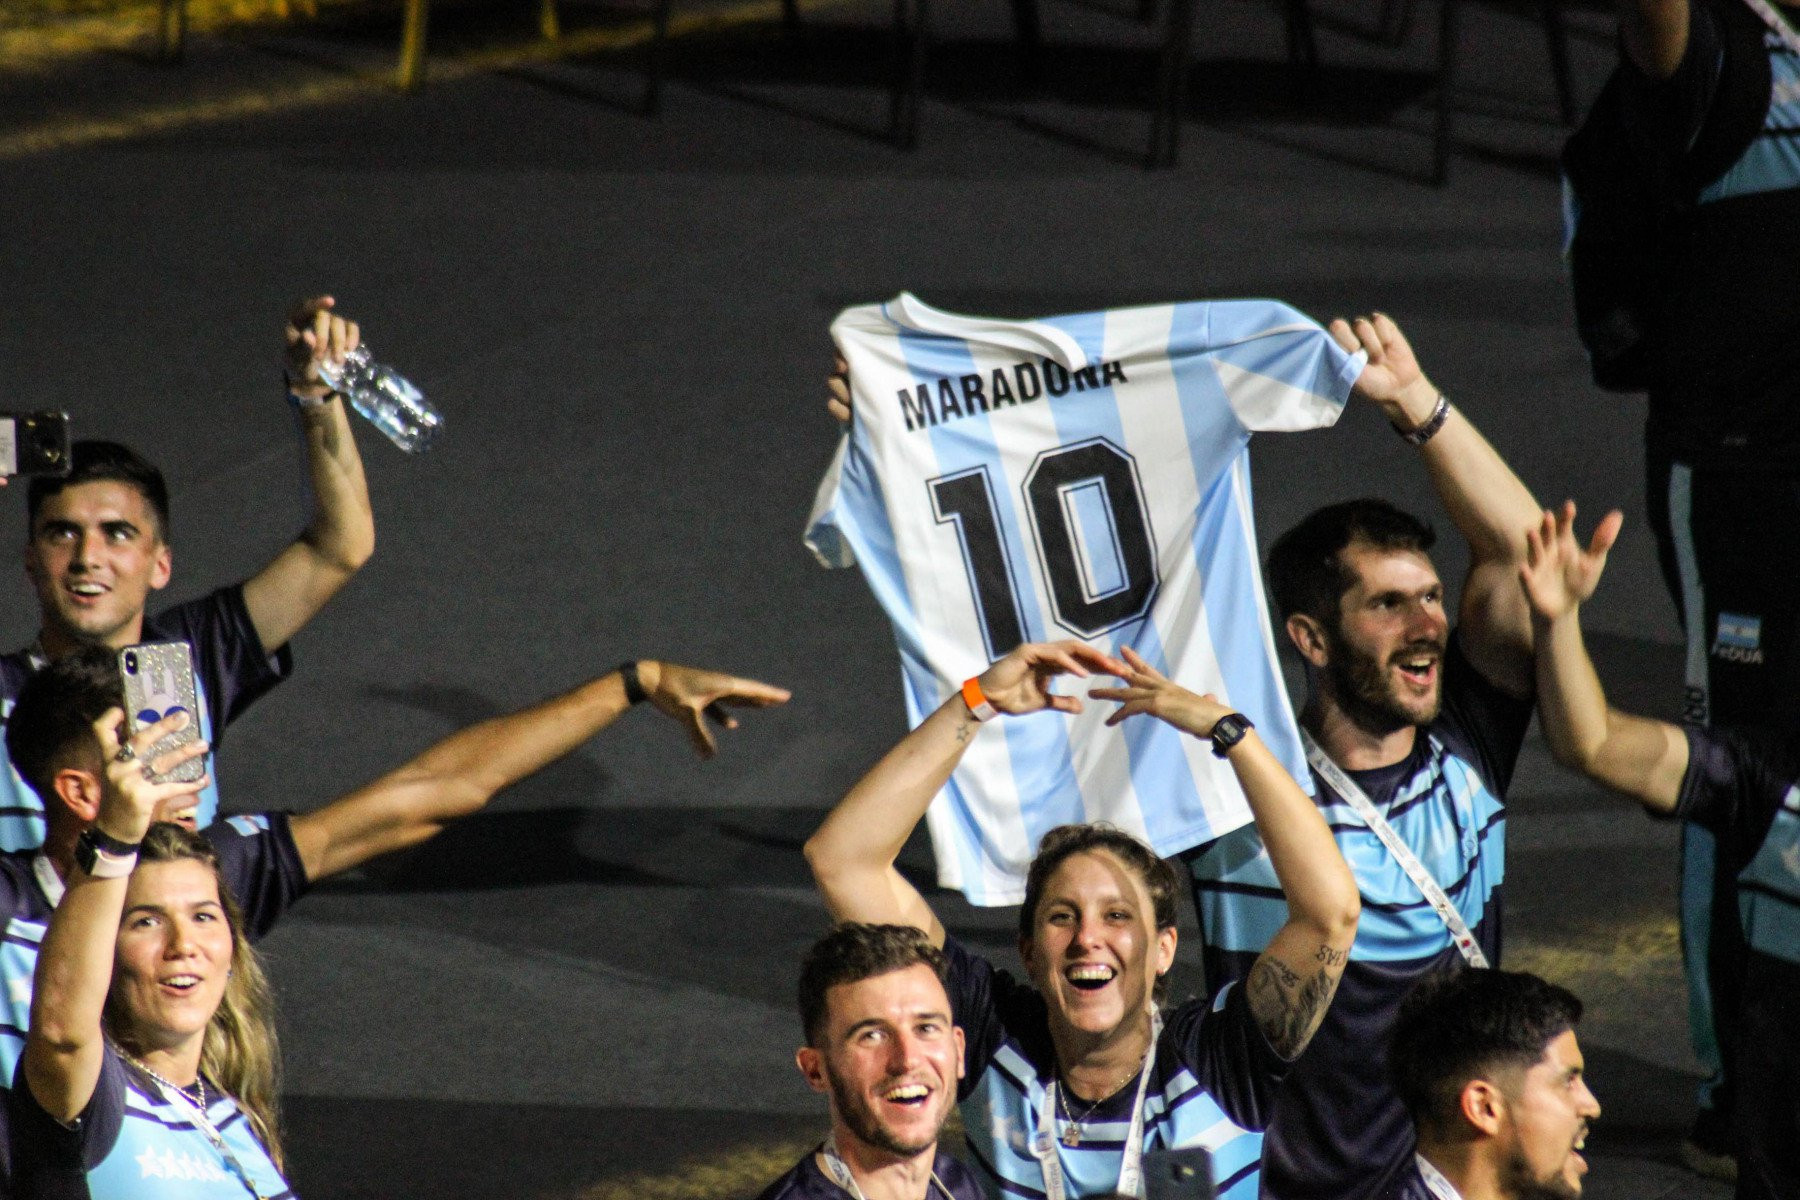 The Argentinian team held aloft a Diego Maradona shirt when they entered the San Paolo Stadium during the Naples 2019 Opening Ceremony ©Naples 2019